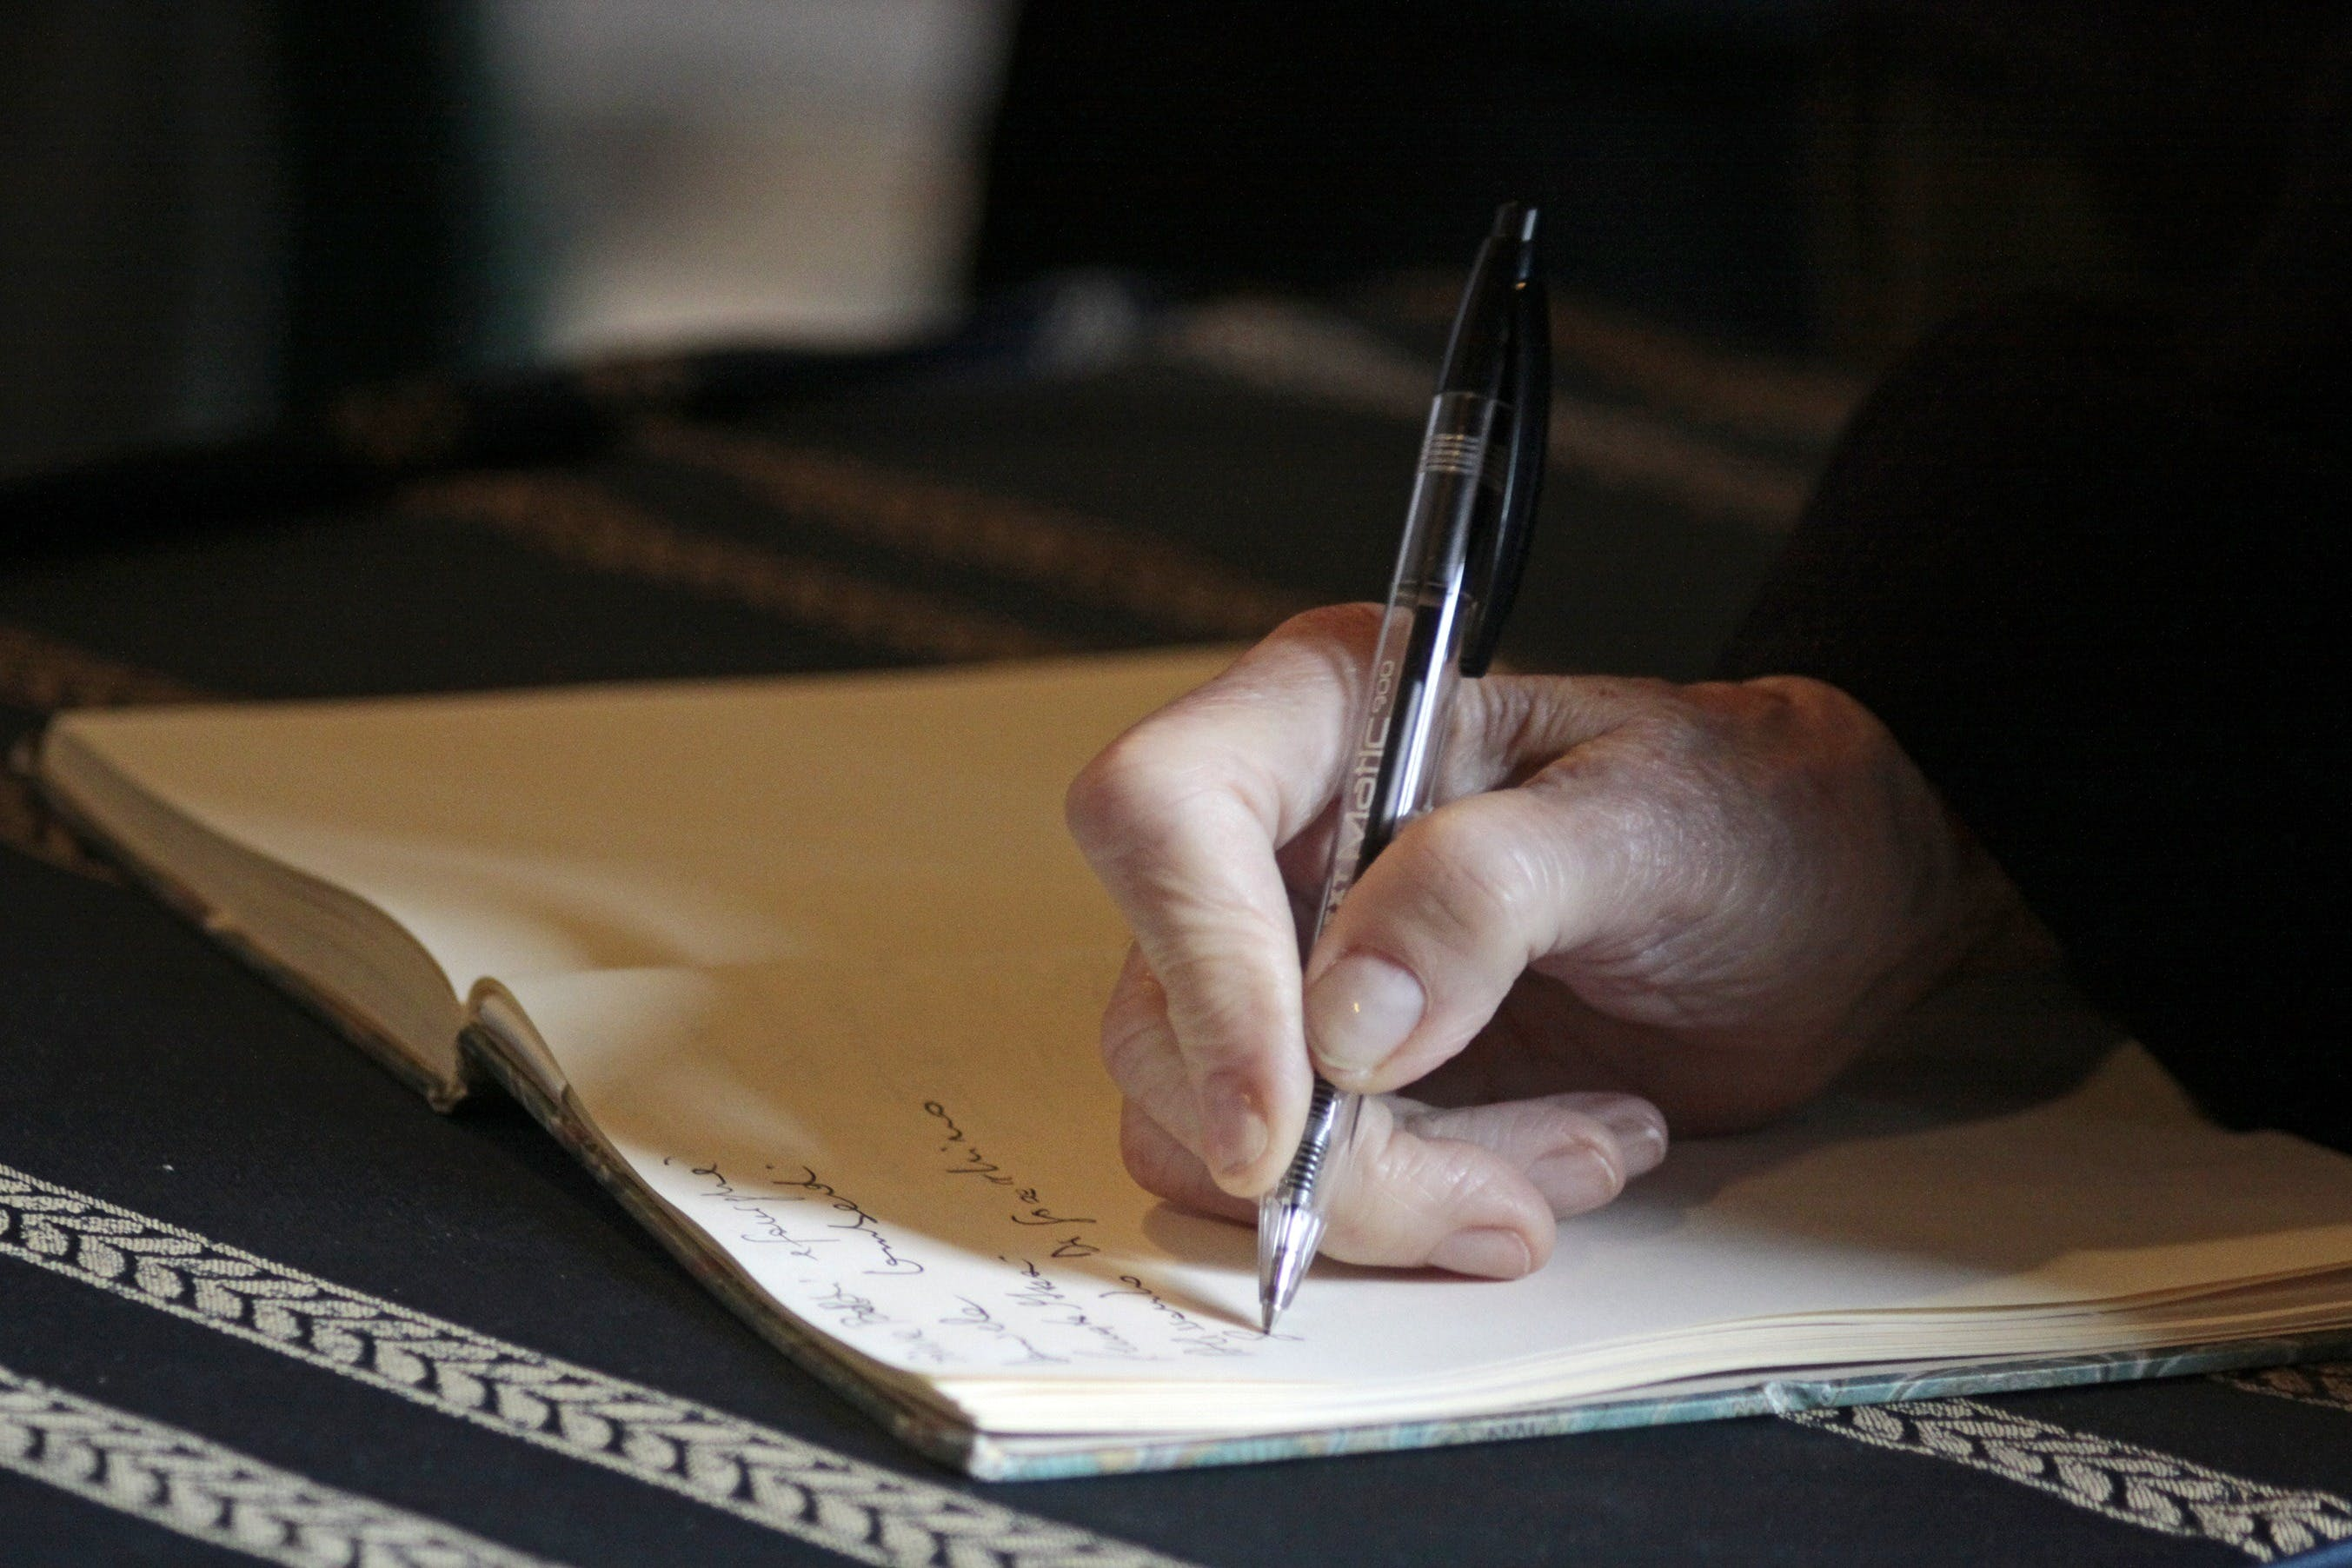 Free stock photo of people, hand, pen, writing